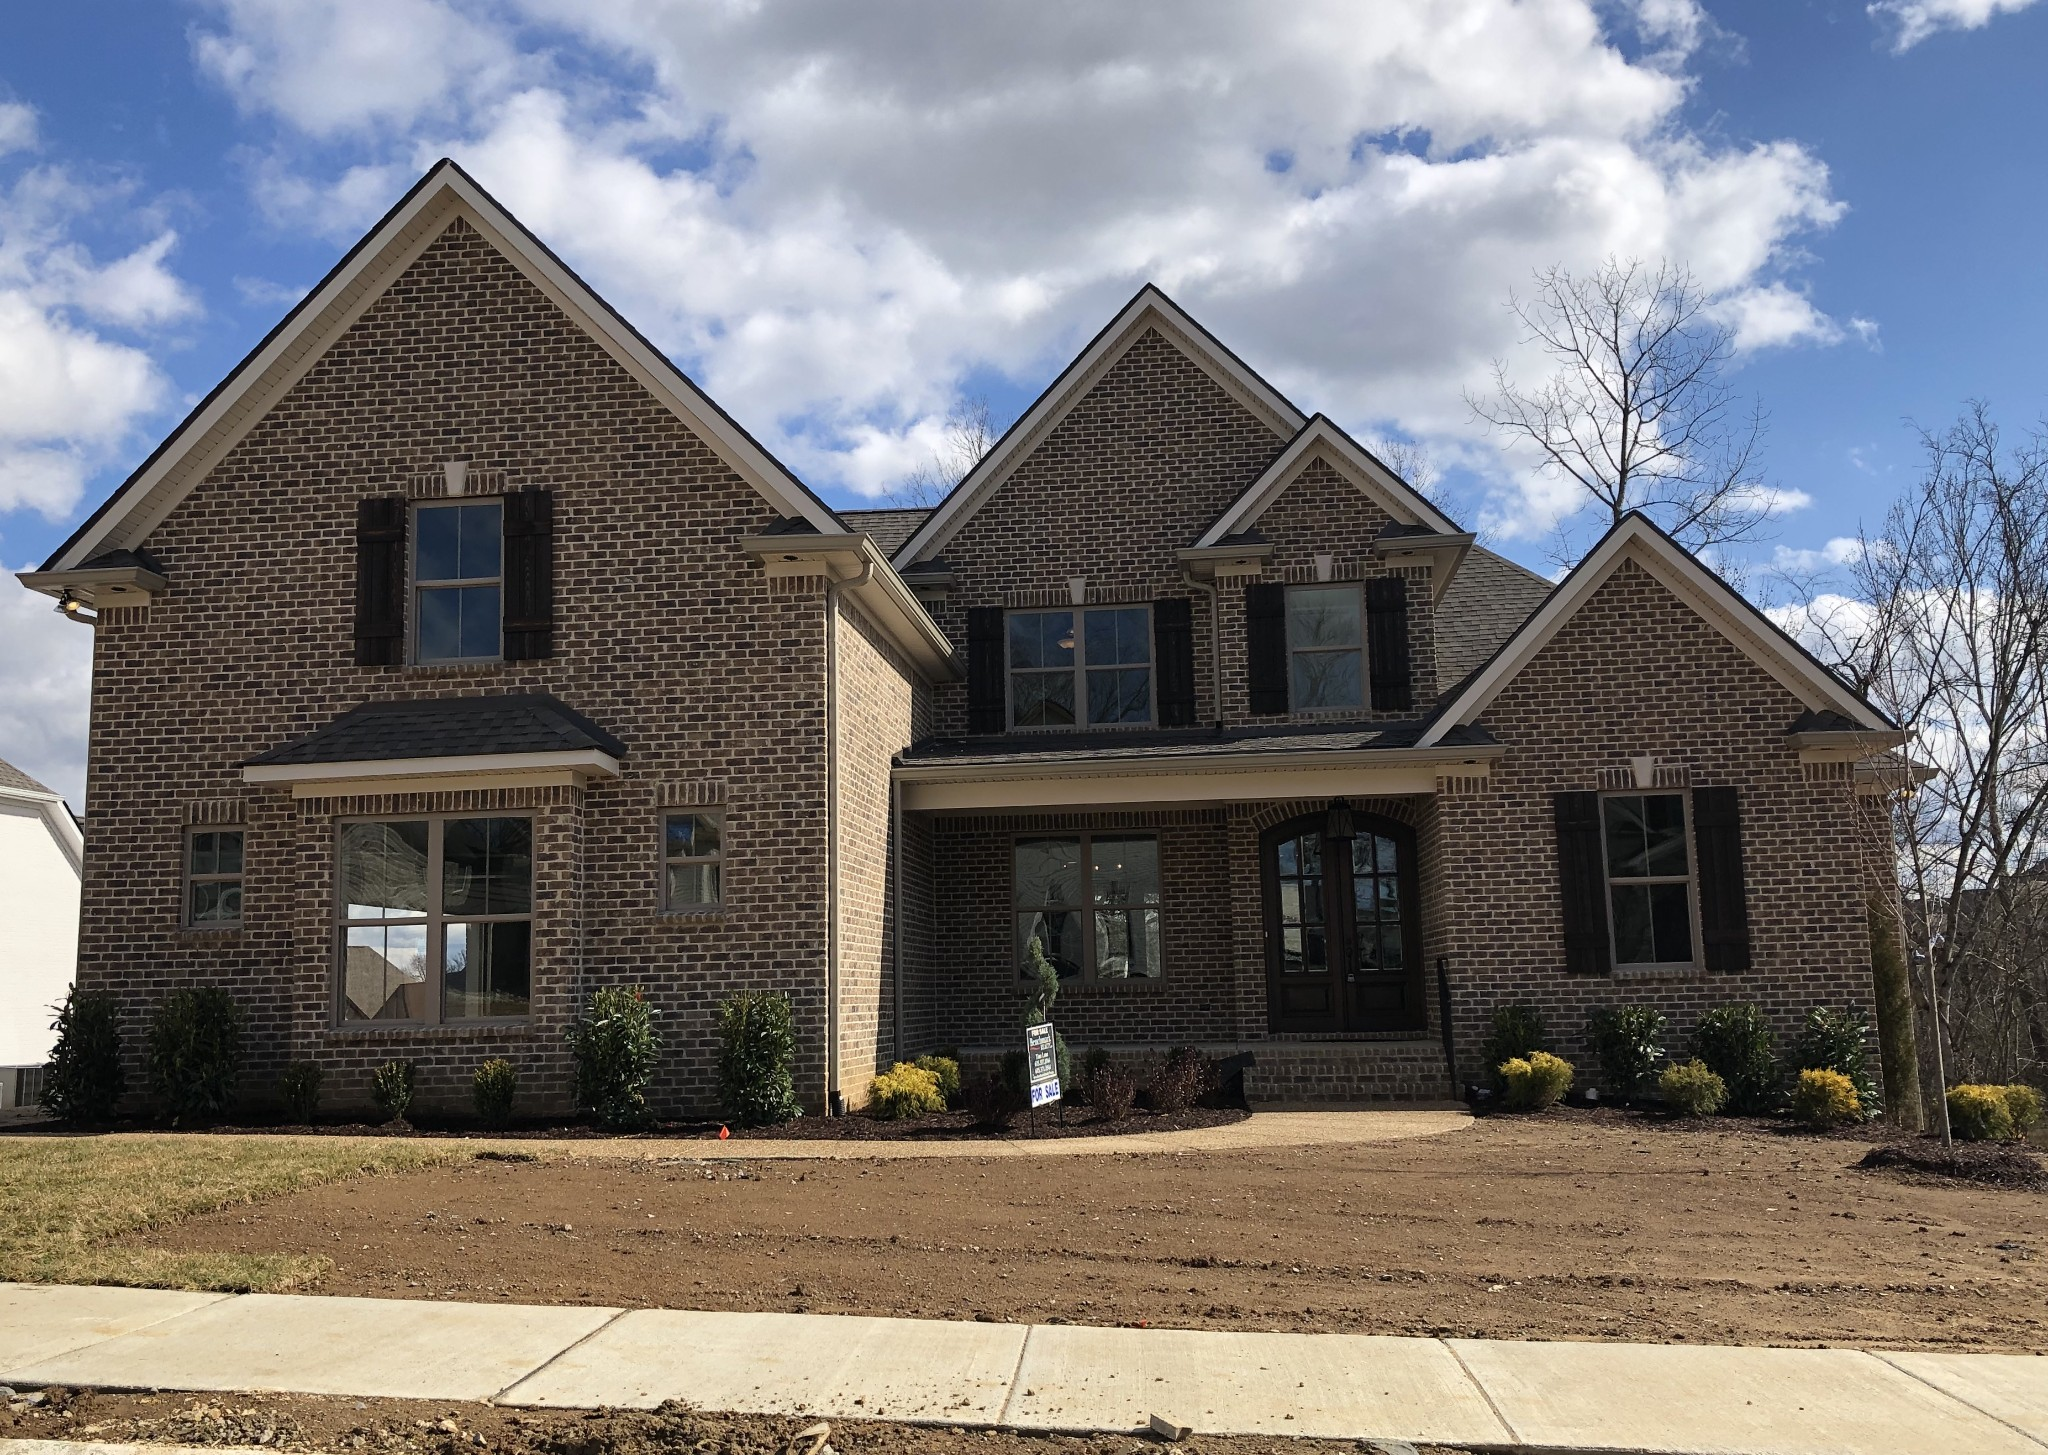 1562 Bunbury Dr (377), Thompsons Station, TN 37179 - Thompsons Station, TN real estate listing